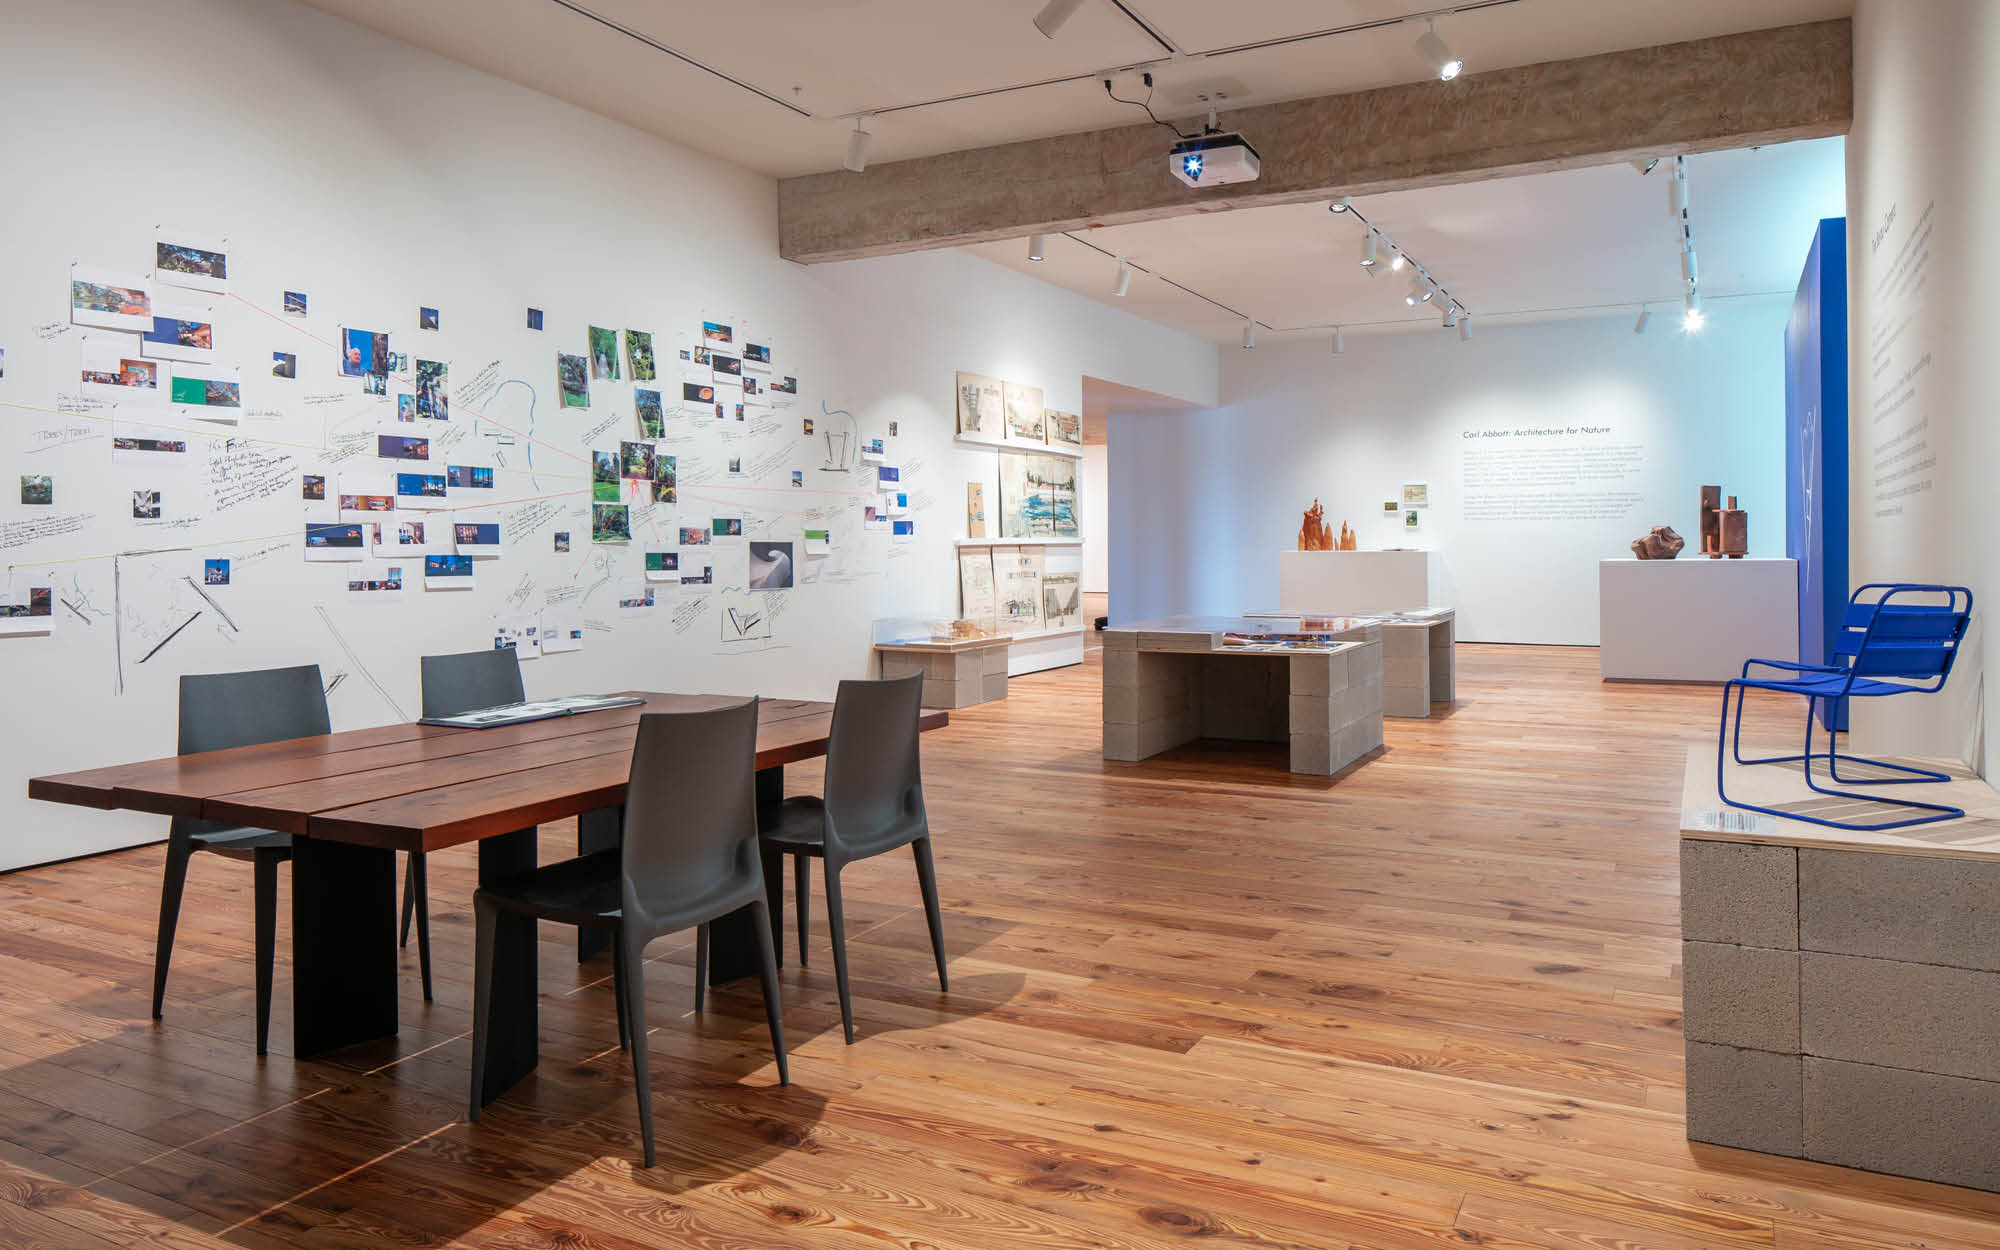 Carl Abbott: Architecture for Nature, Sarasota Art Museum of Ringling College, November 8, 2020 - May 2, 2021 (installation view). Courtesy of the artist. Photo: Ryan Gamma.